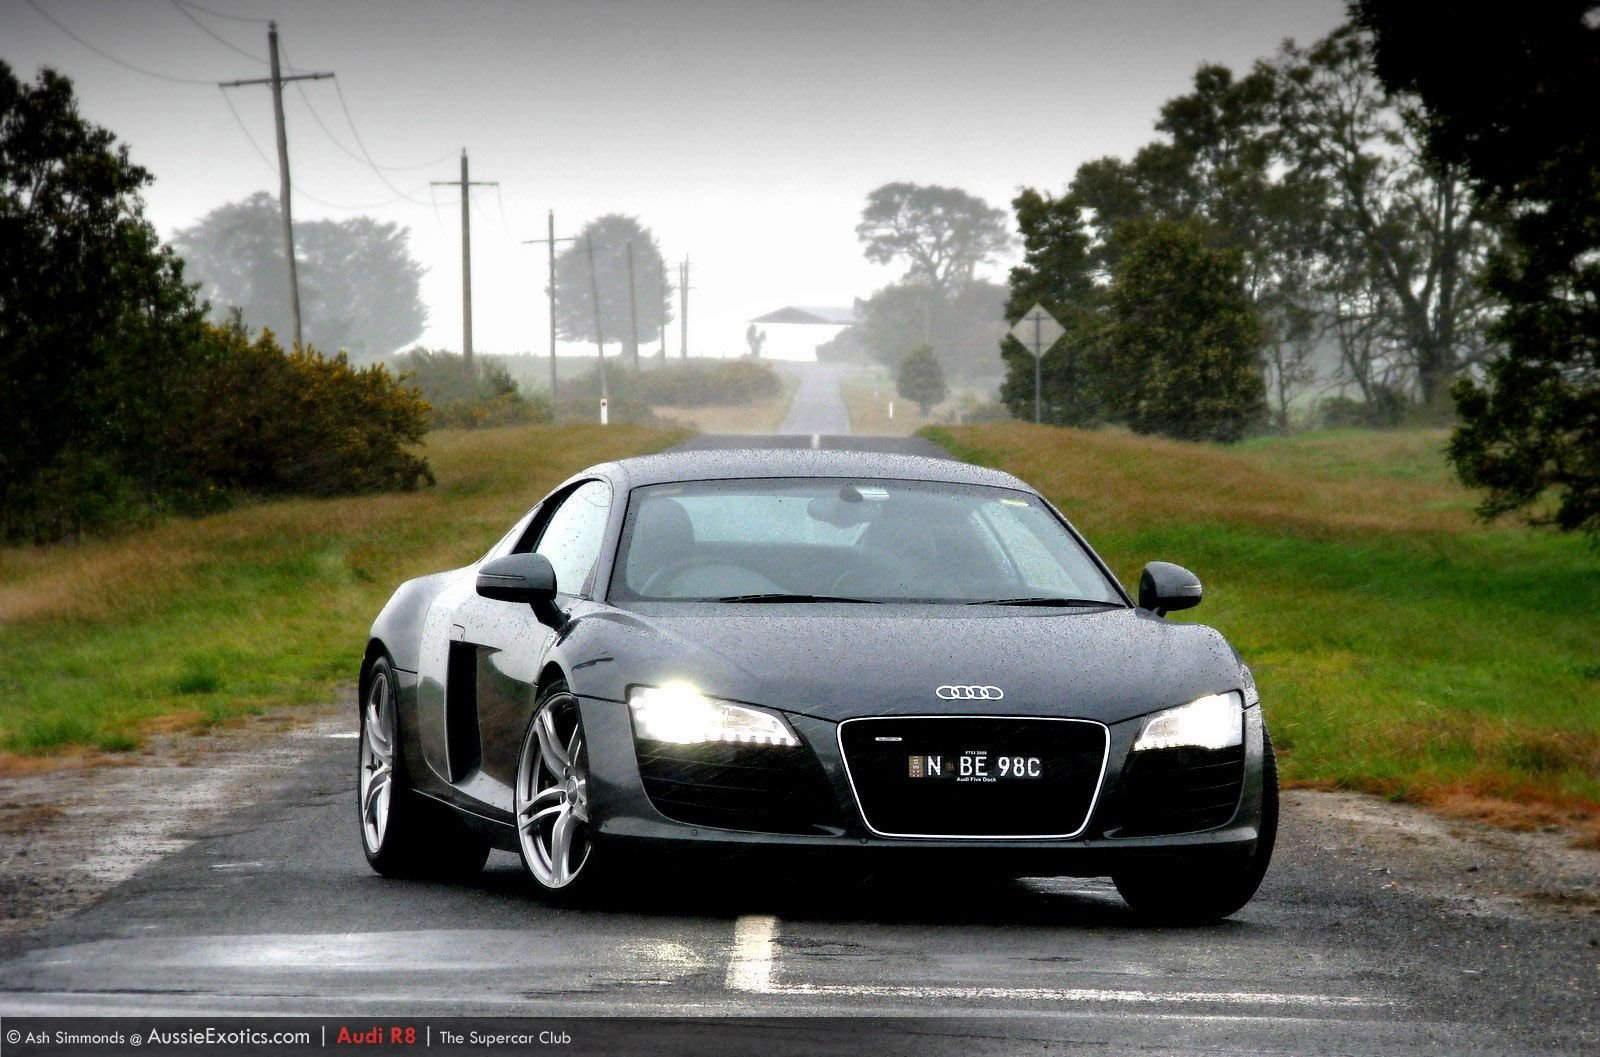 Latest Wallpapers For Desktop 3D Cars Audi Car Walpaper Page 4 Free Download